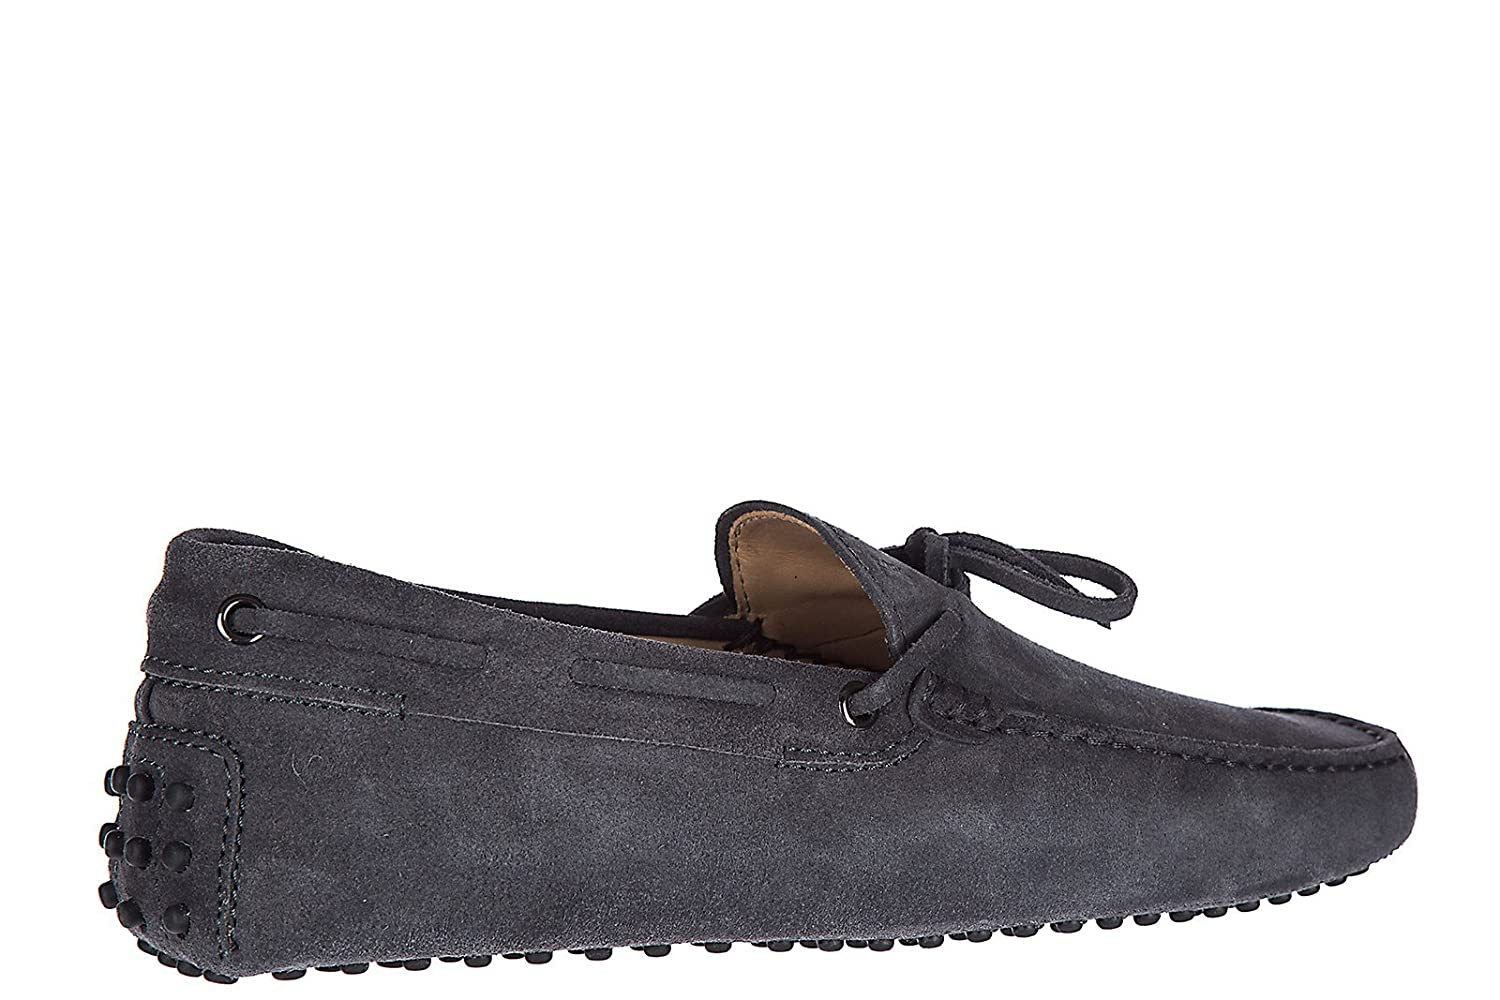 ded88193b80 Tod s Men s Suede Loafers Moccasins laccetto gommini 122 Grey US Size 12  XXM0GW05470RE0B608  Amazon.co.uk  Shoes   Bags